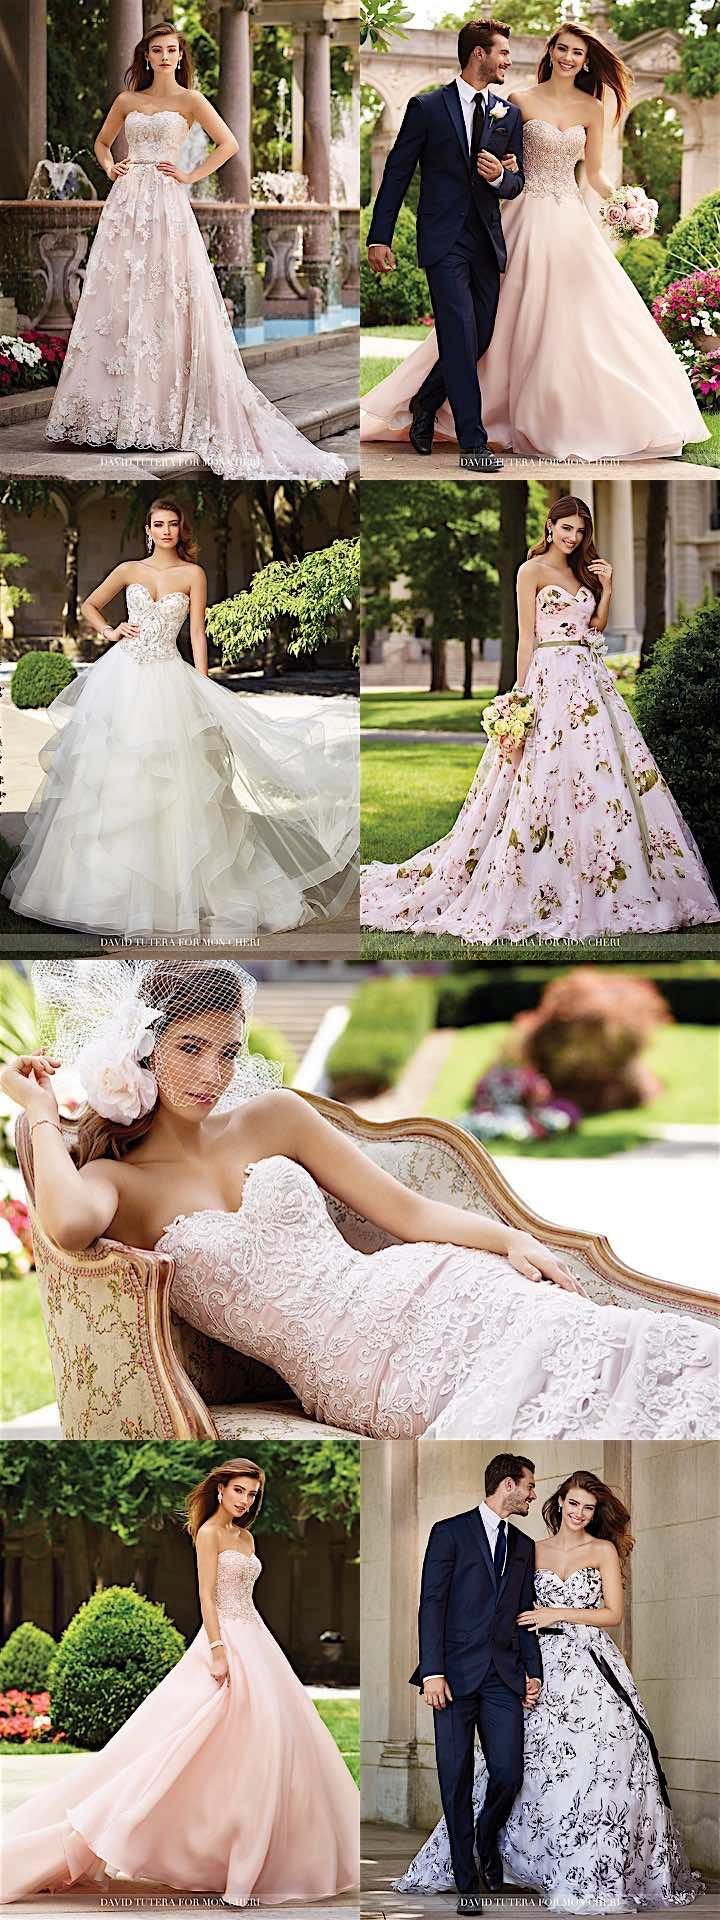 david-tutera-wedding-dresses-collage-2-111316mc